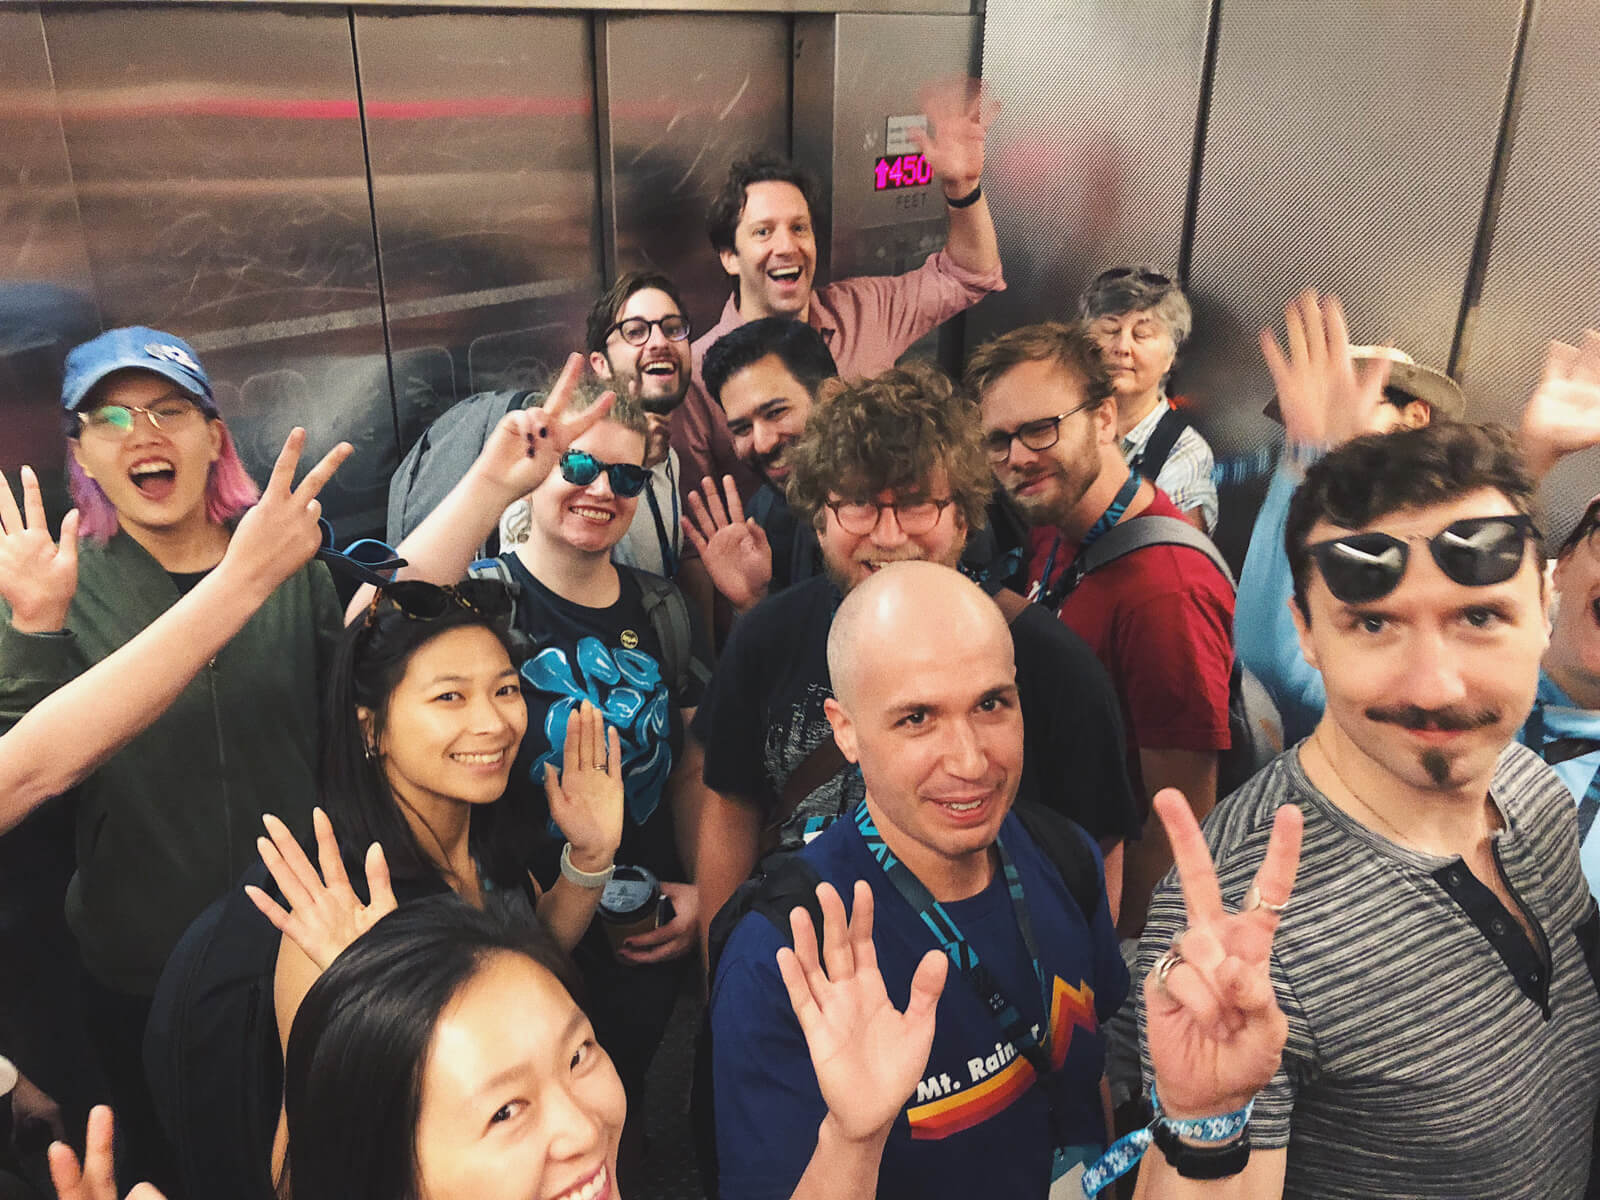 A handful of people in an elevator, all of them smiling/waving.